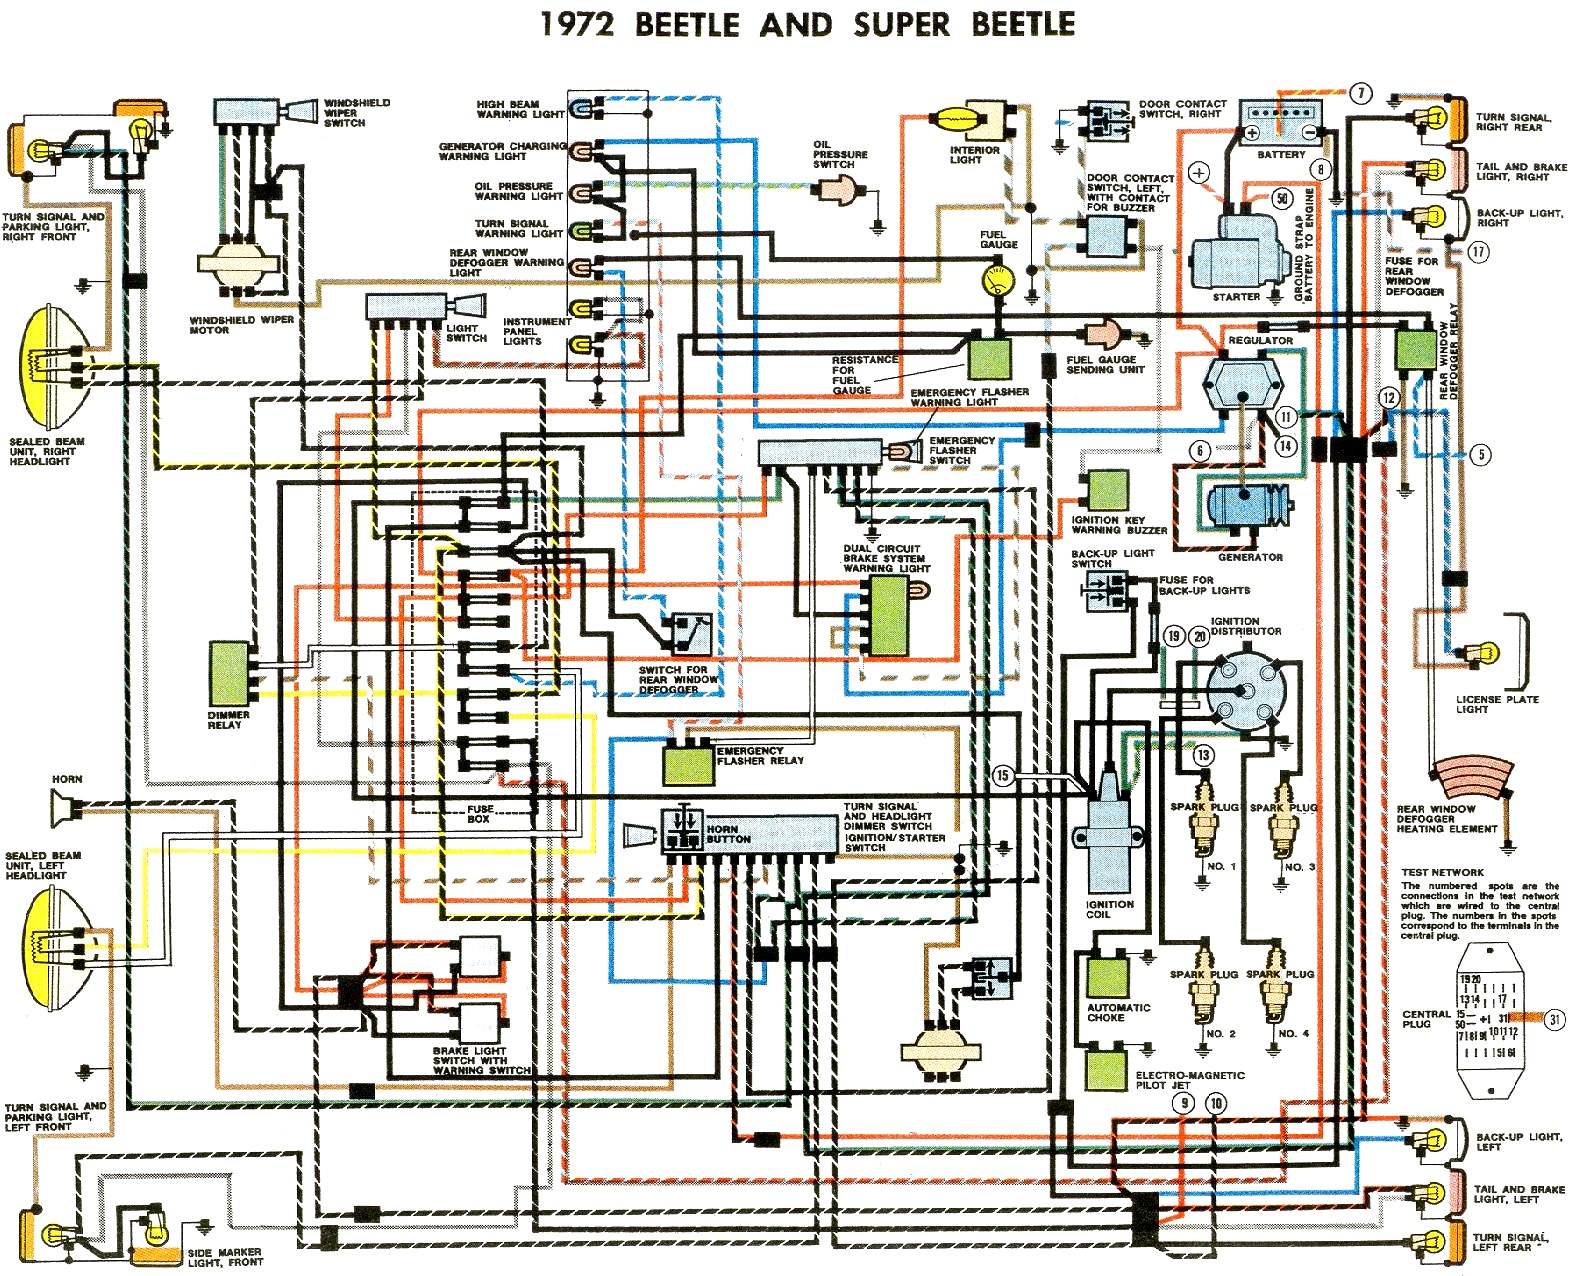 bug_72 1972 beetle wiring diagram thegoldenbug com 1978 vw bus fuse box diagram at mifinder.co